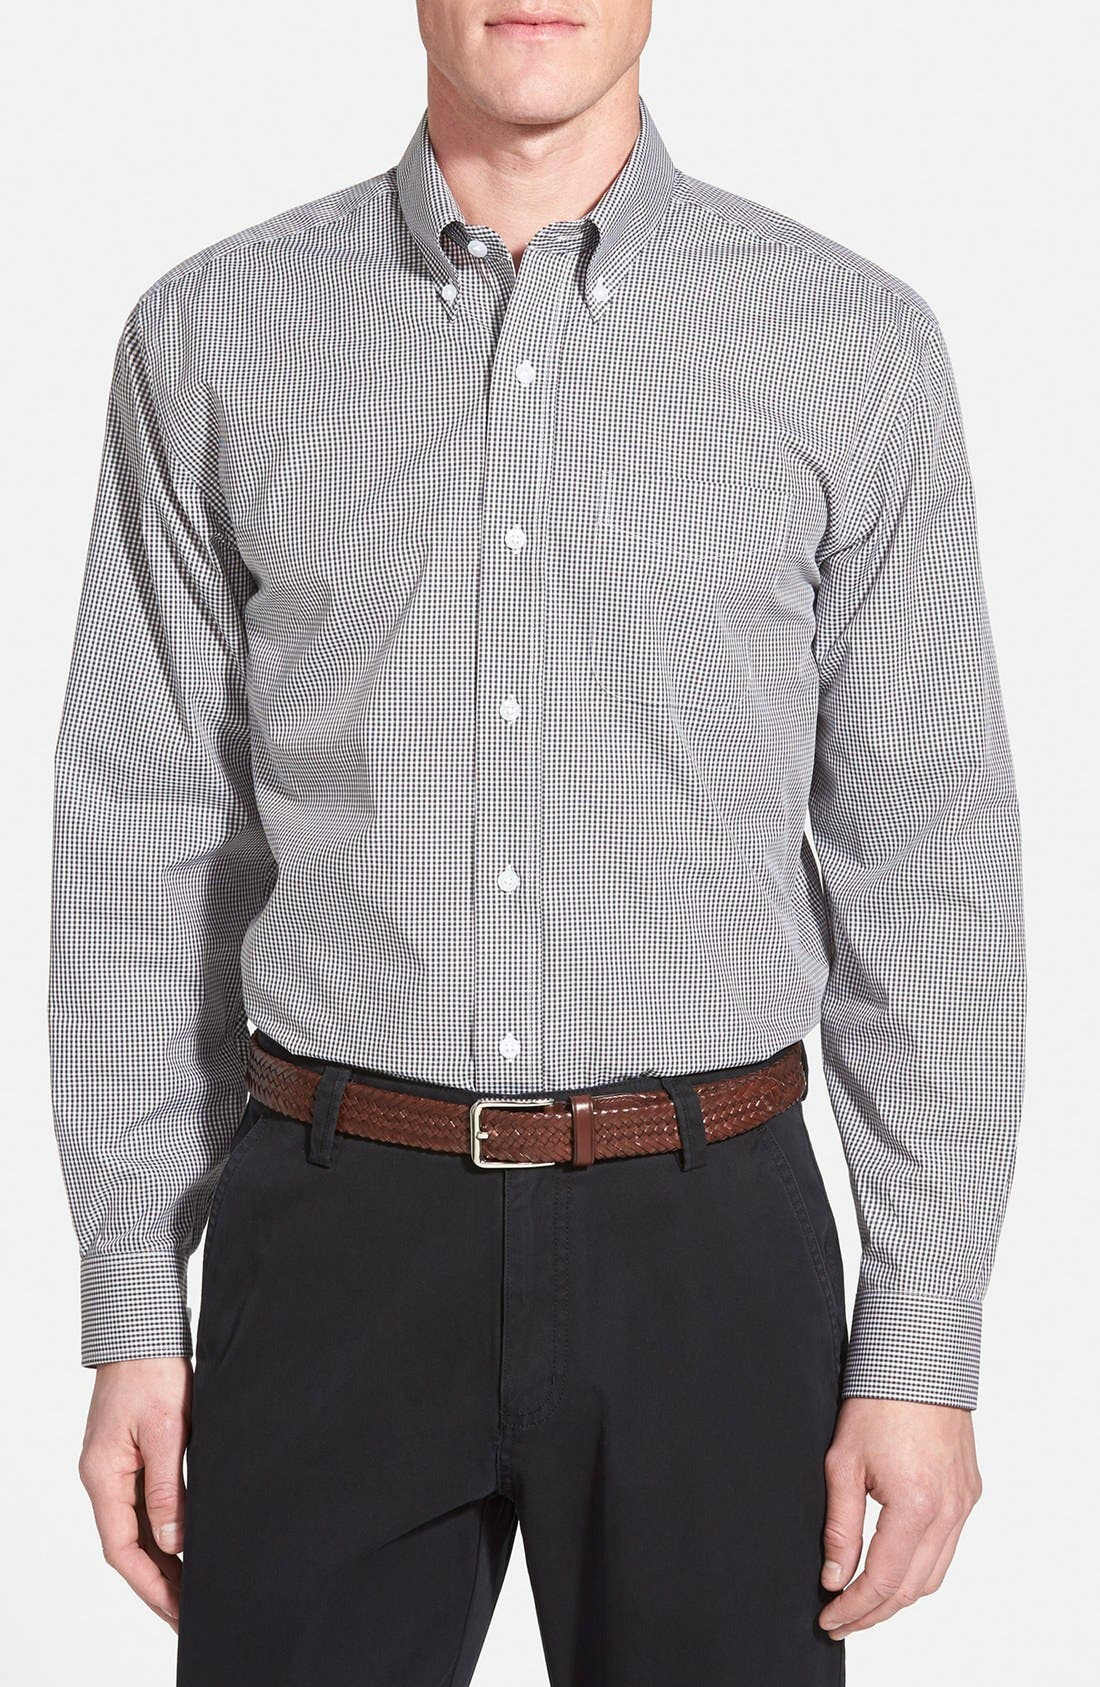 Cutter & Buck 'Epic Easy Care' Classic Fit Wrinkle Free Gingham Sport Shirt (Big & Tall)